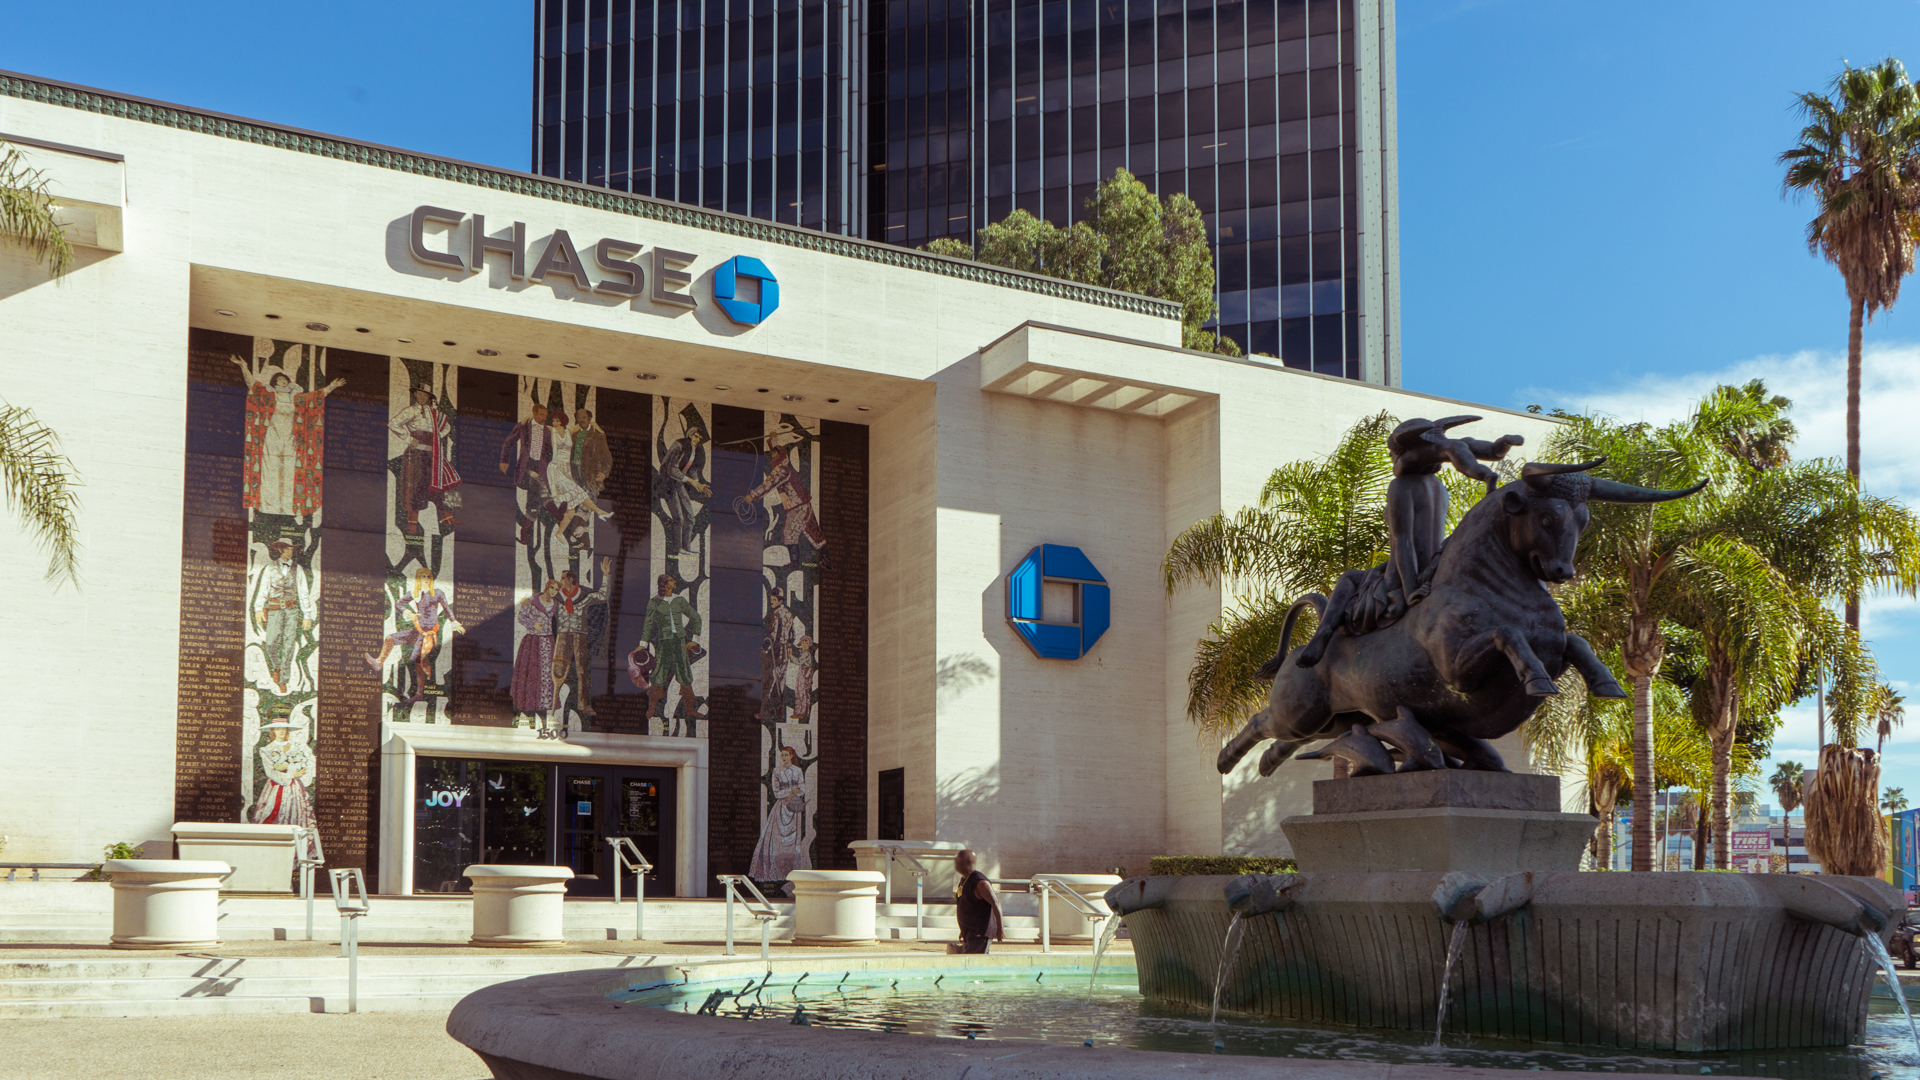 Chase Bank Near Me | GOBankingRates